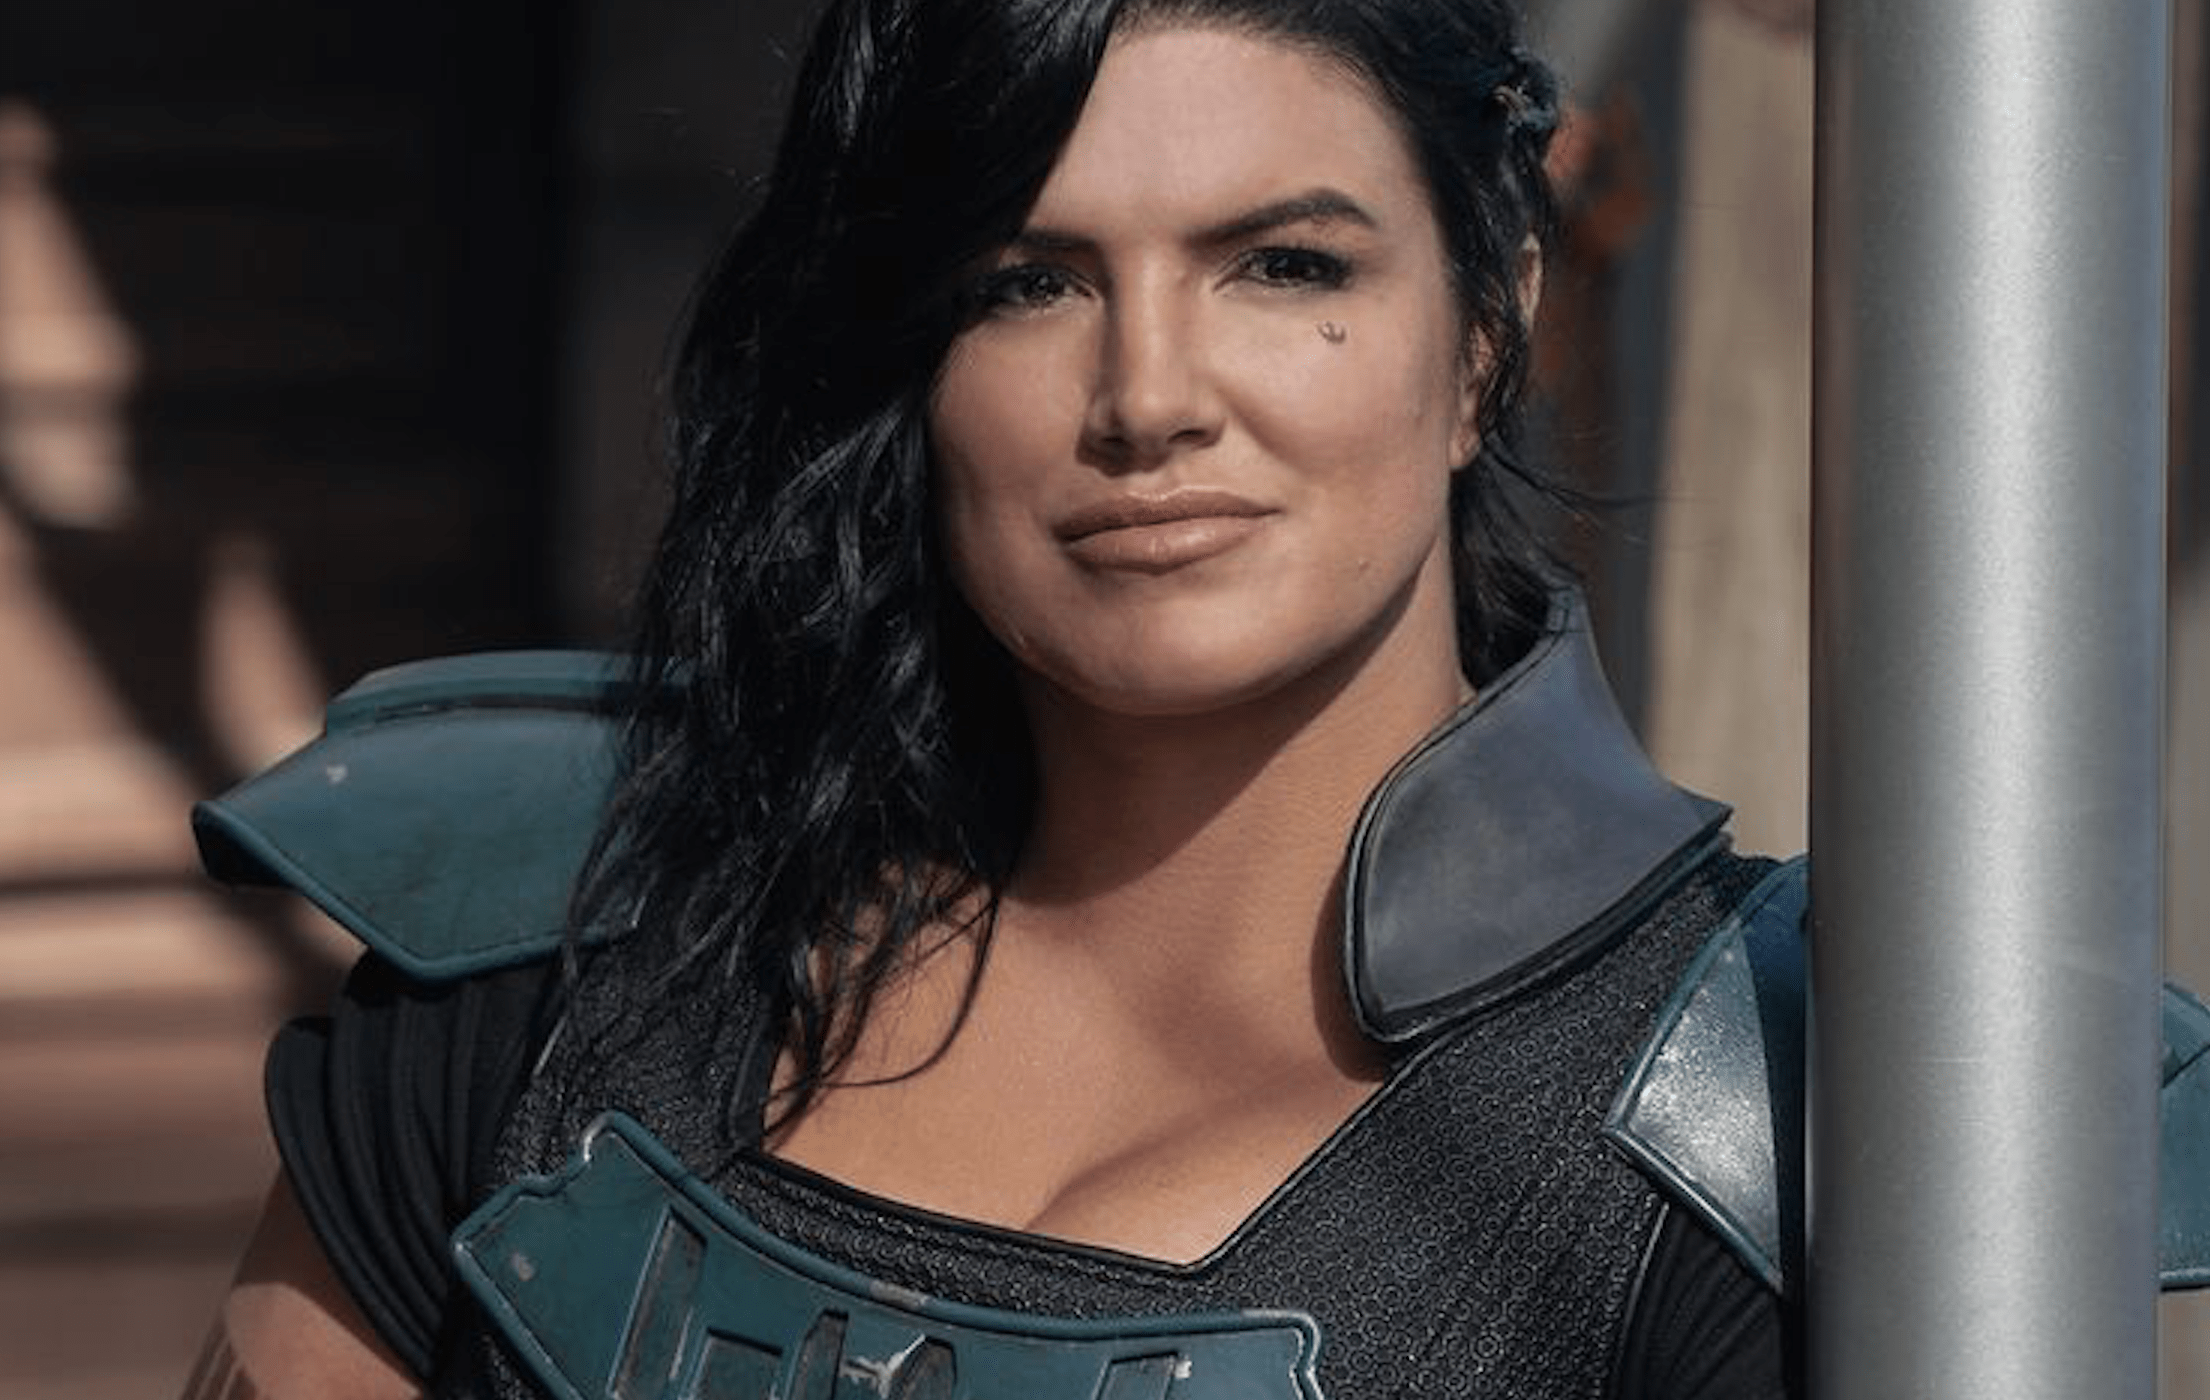 Gina Carano Fired for Being Conservative, But Disney Filmed Mulan in China Where It Commits Genocide